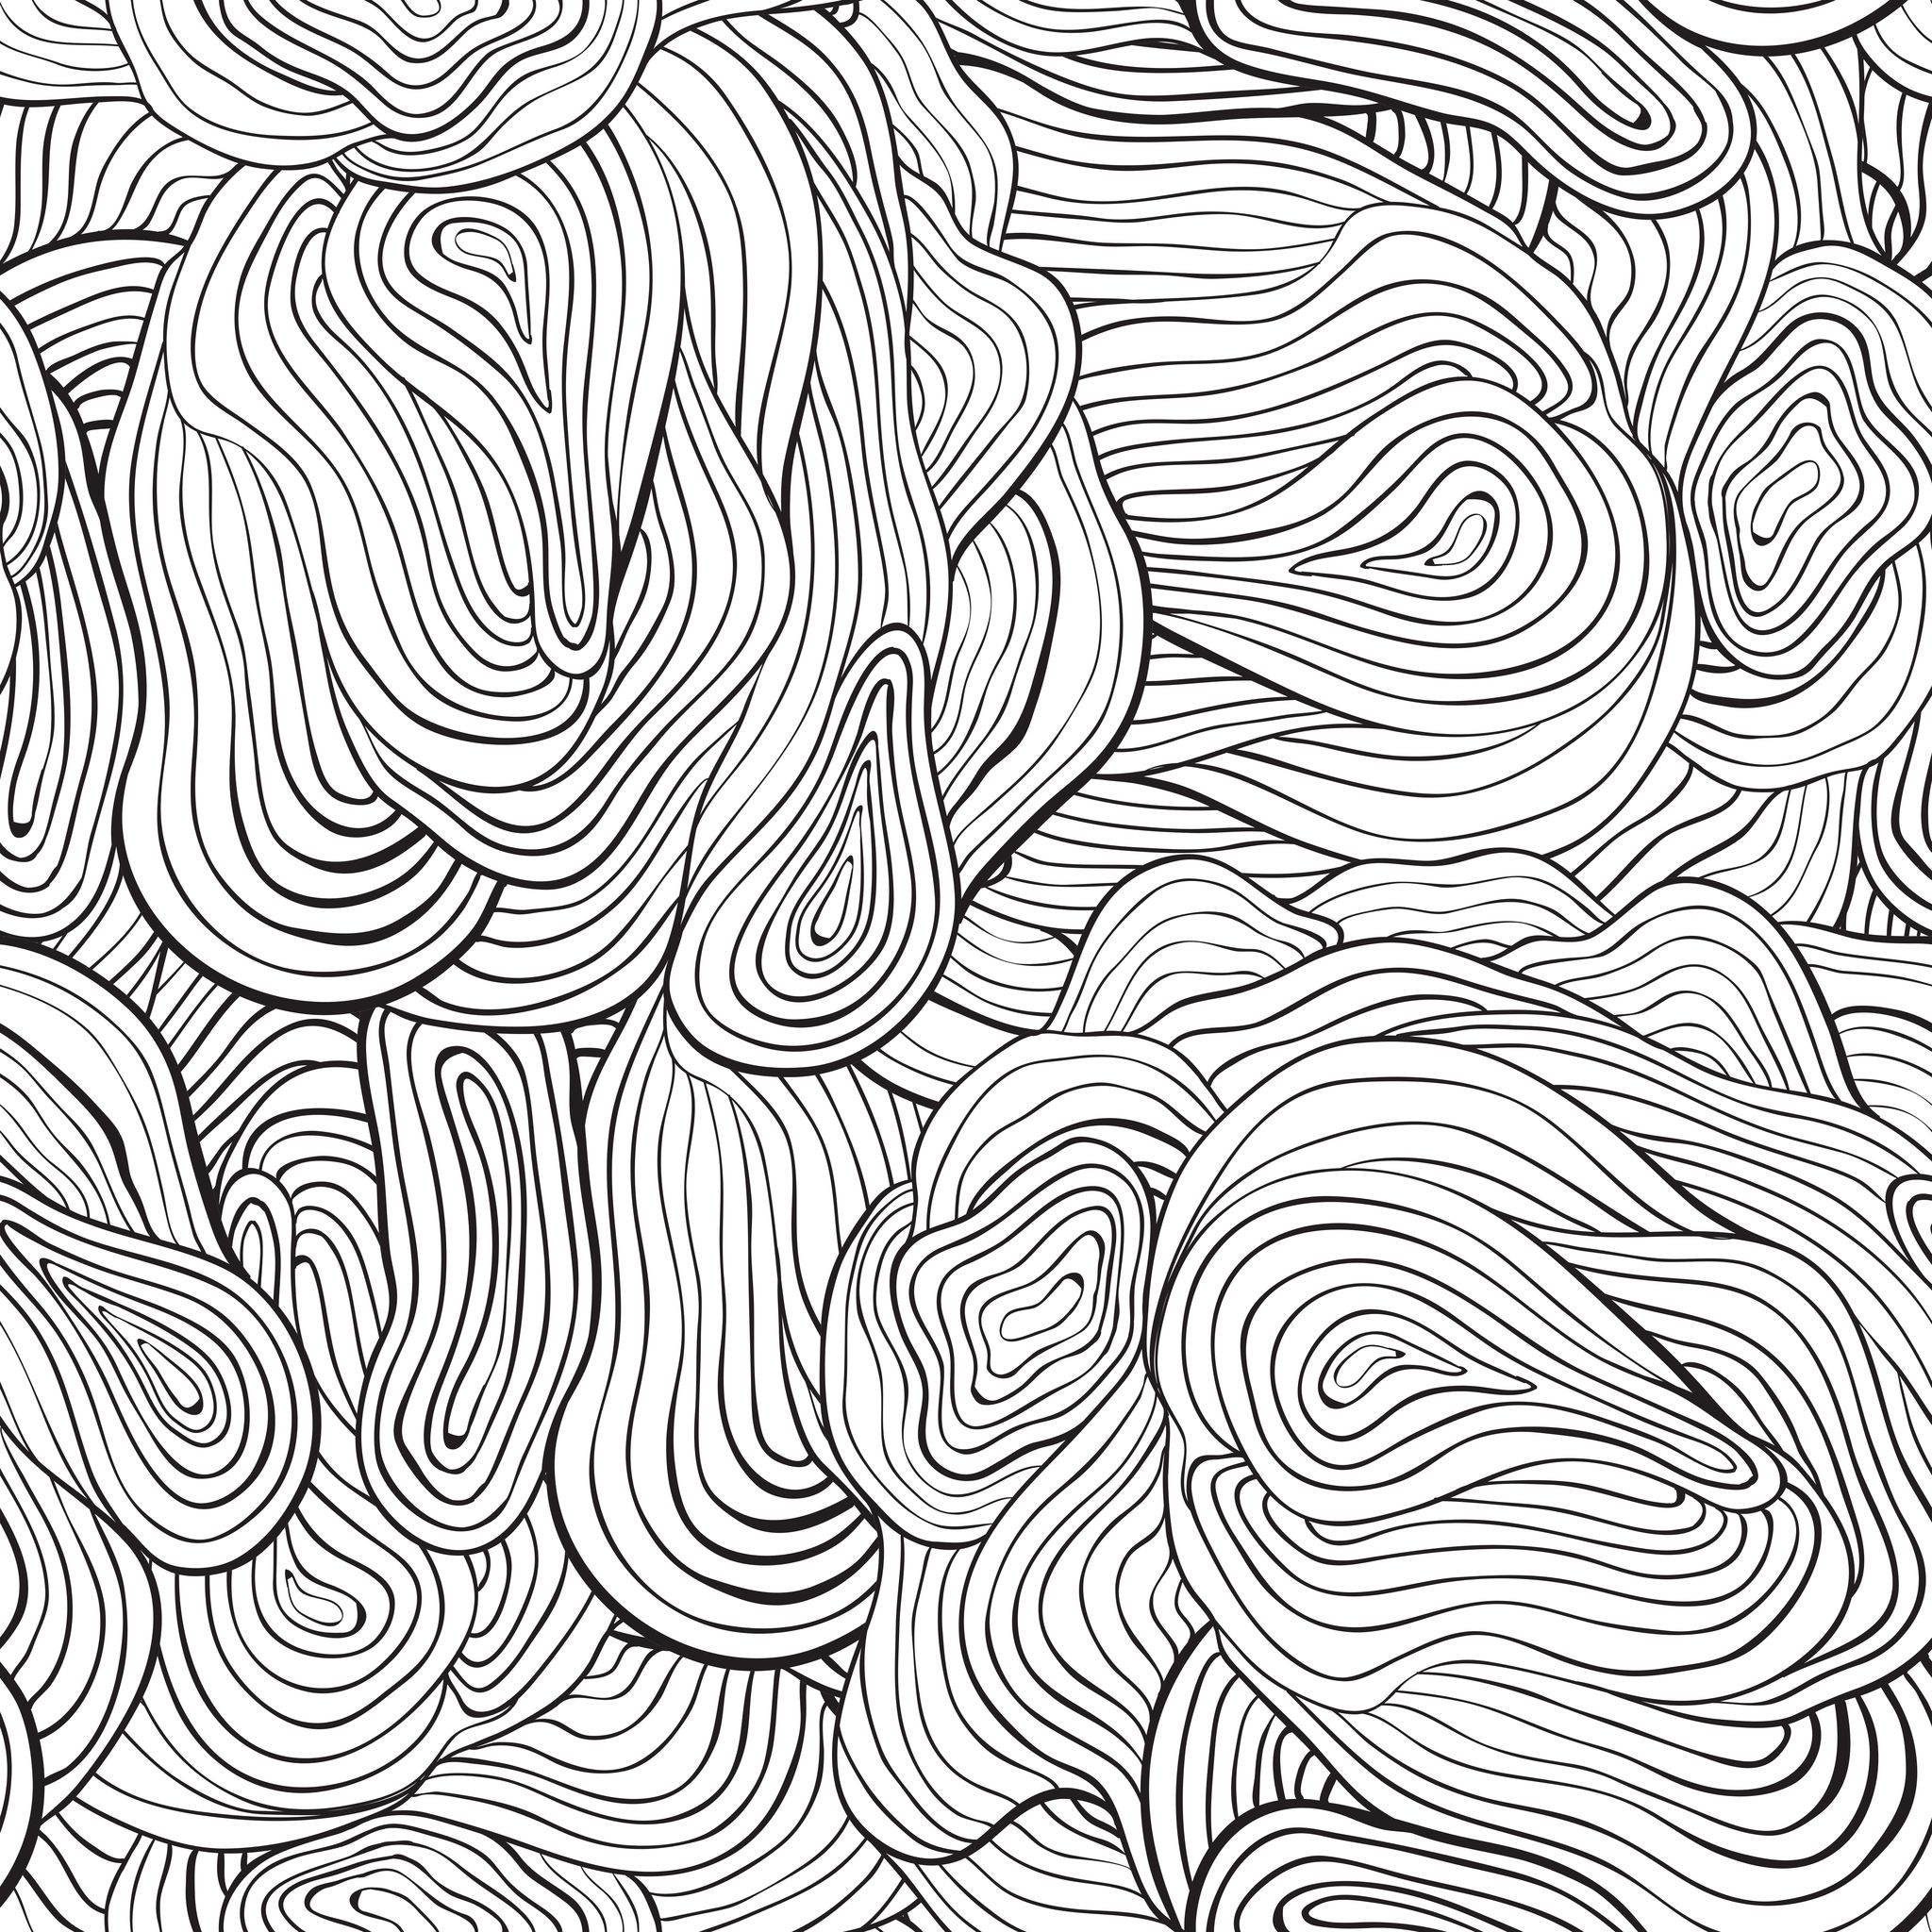 Coloriage Adulte Effet.Coloriage Adulte Anti Stress